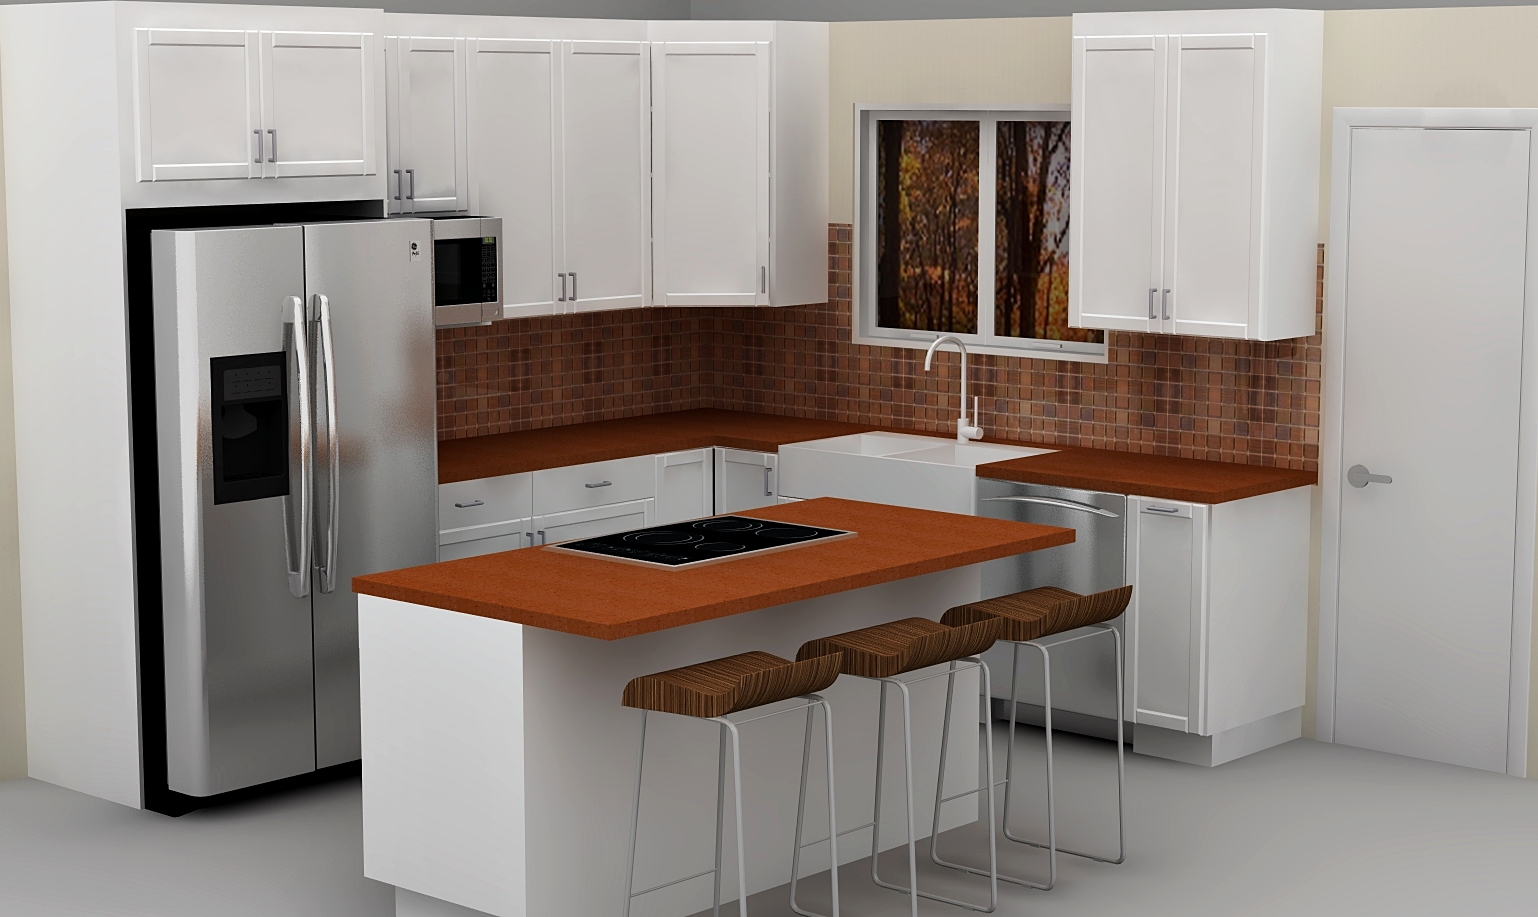 Uncategorized Ikea Kitchen Design a classic white ikea kitchen with twist